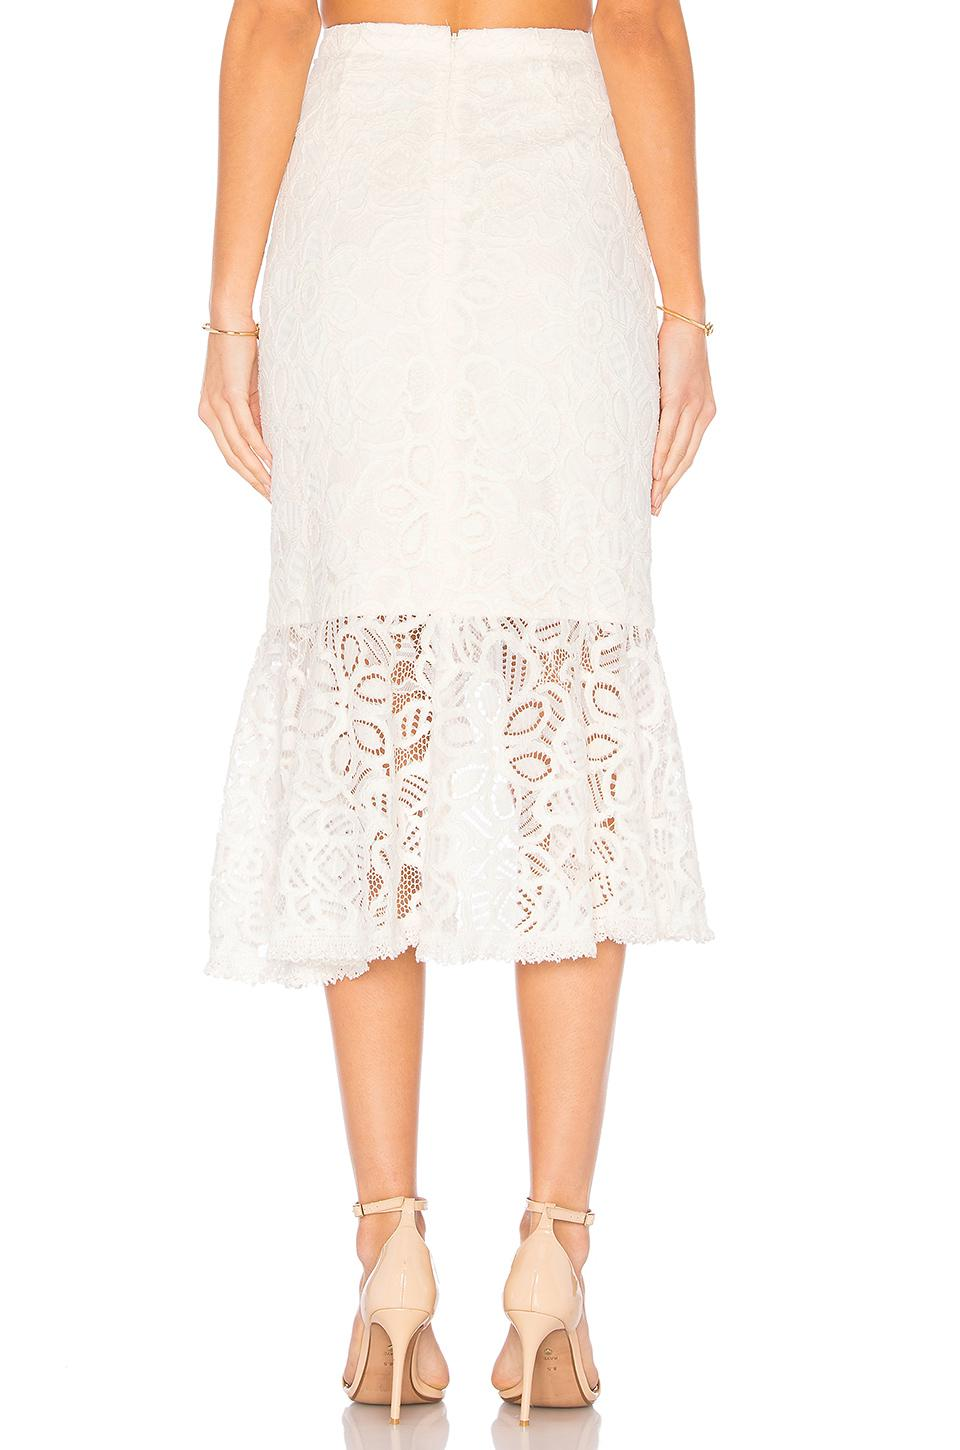 Alexis Lace Marcello Skirt in White